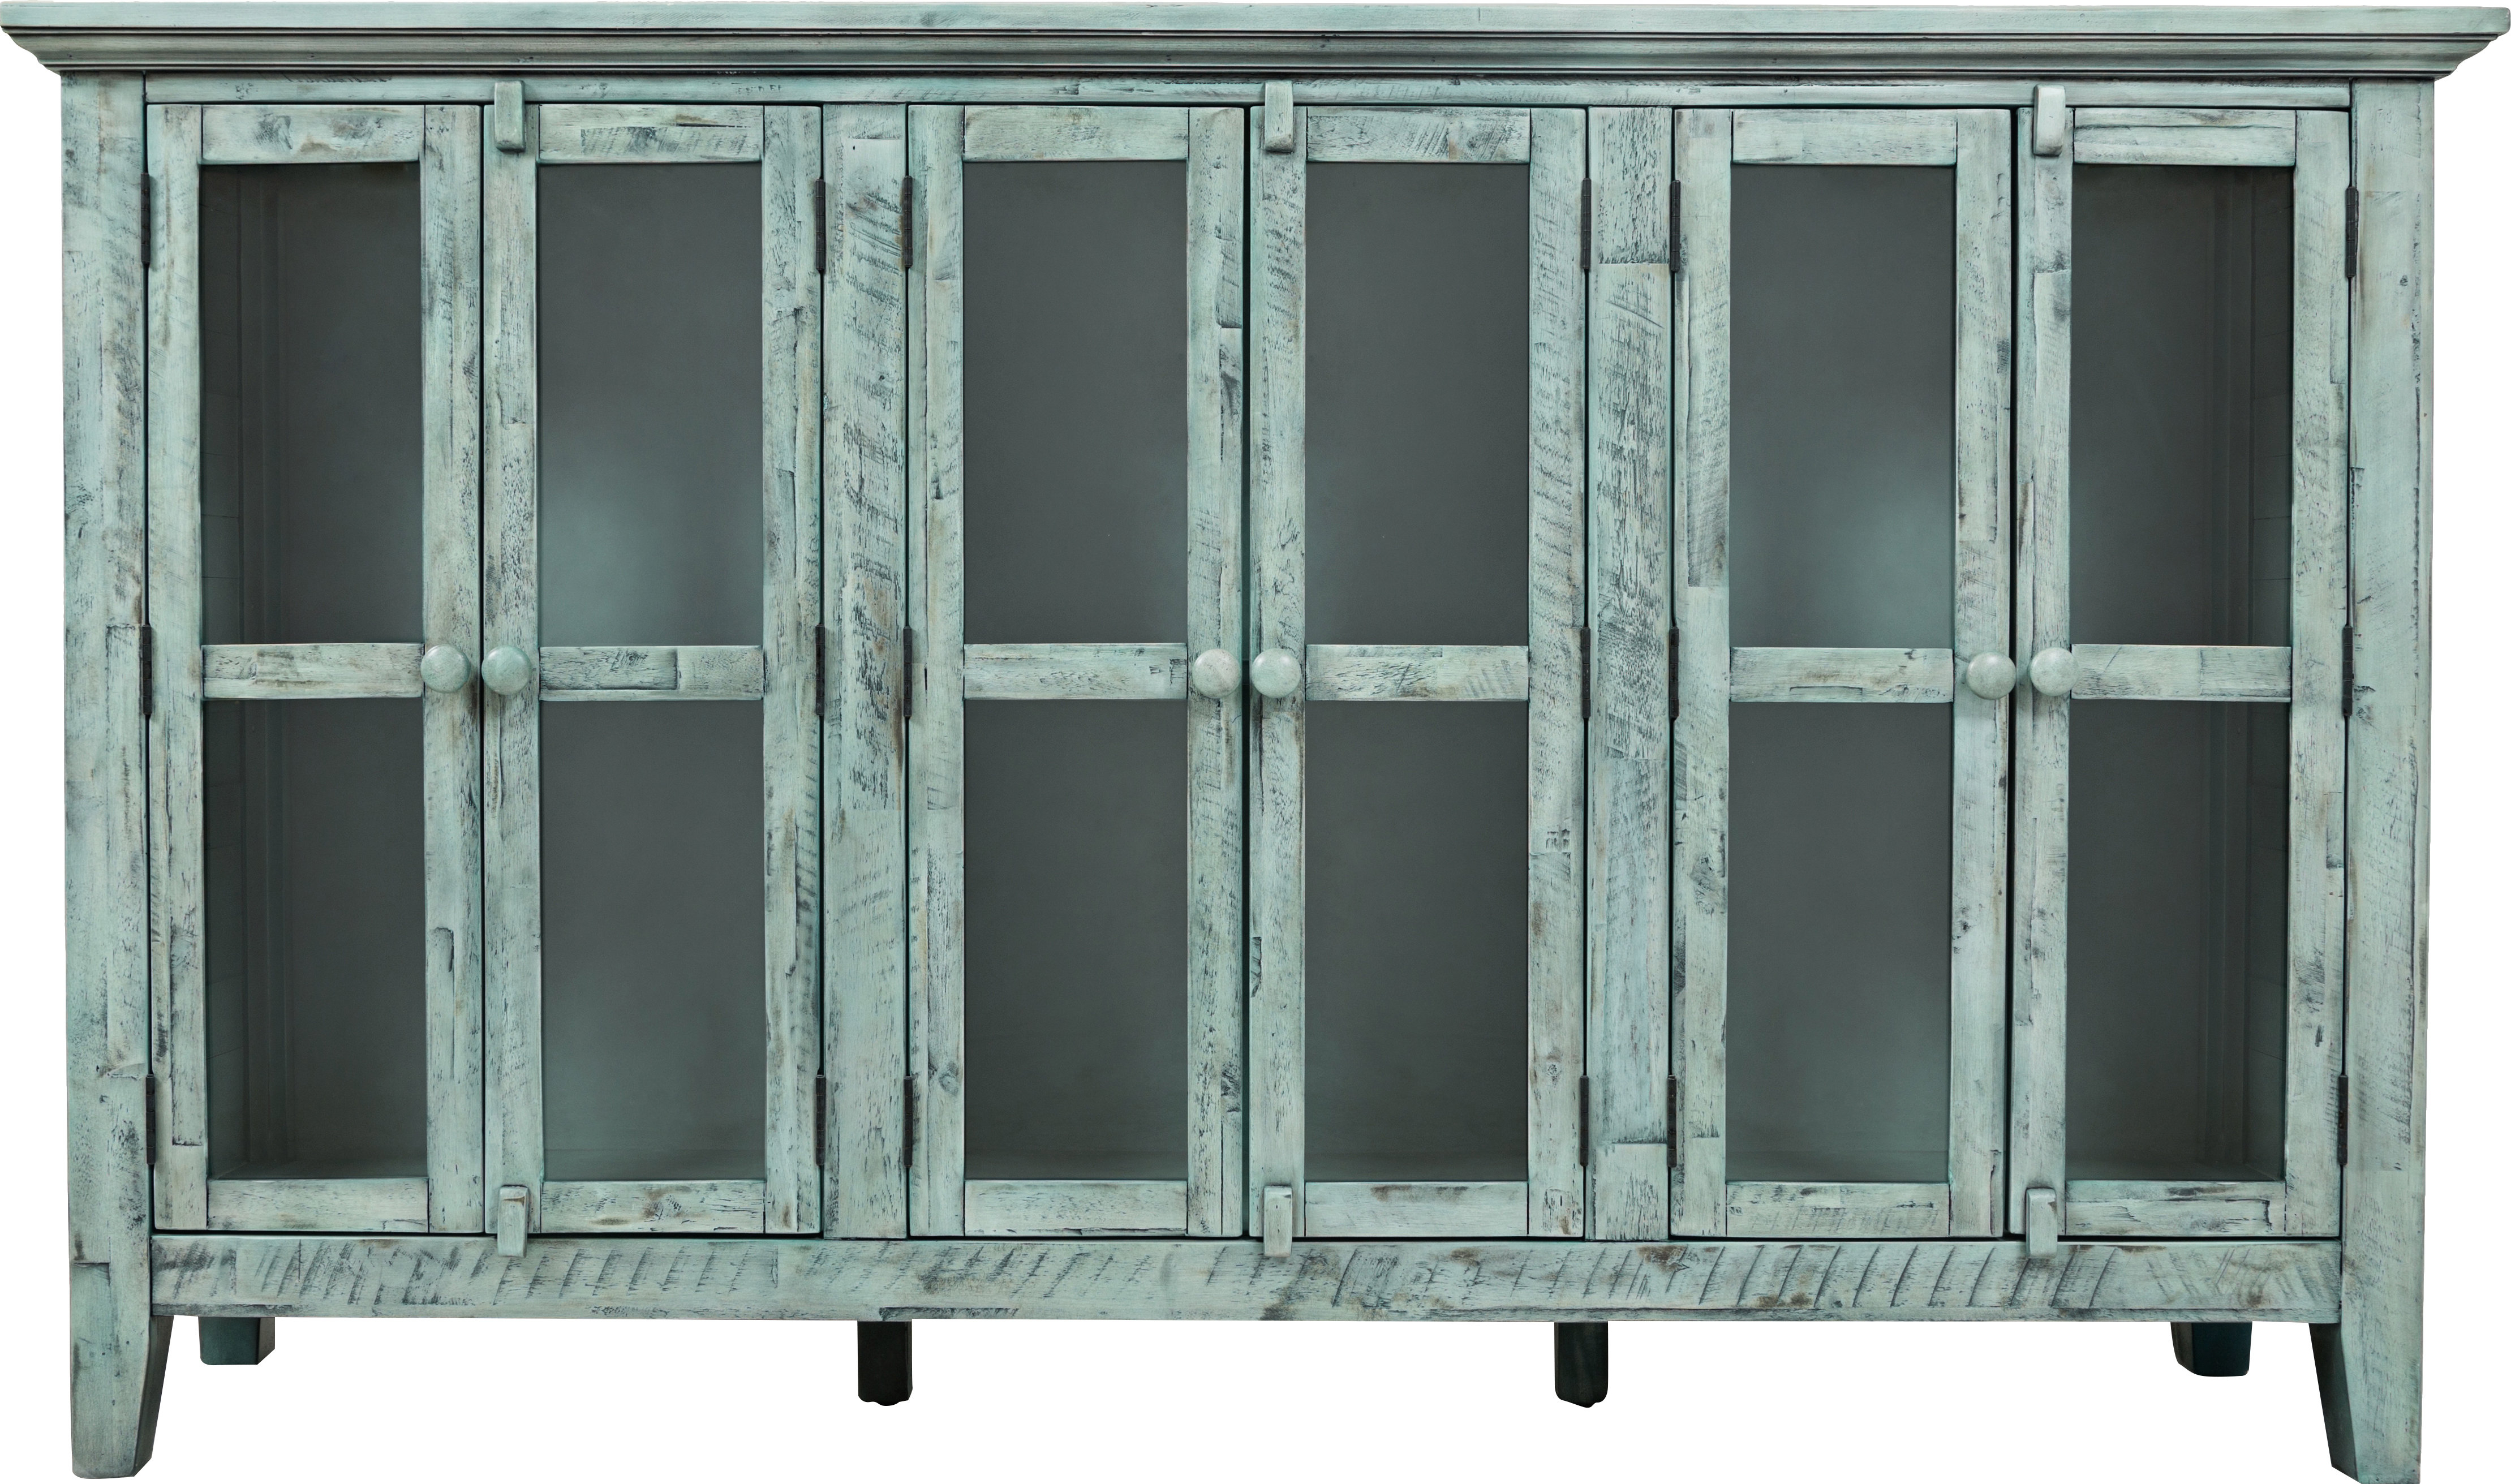 Eau Claire 6 Door Accent Cabinet with regard to Eau Claire 6 Door Accent Cabinets (Image 16 of 30)